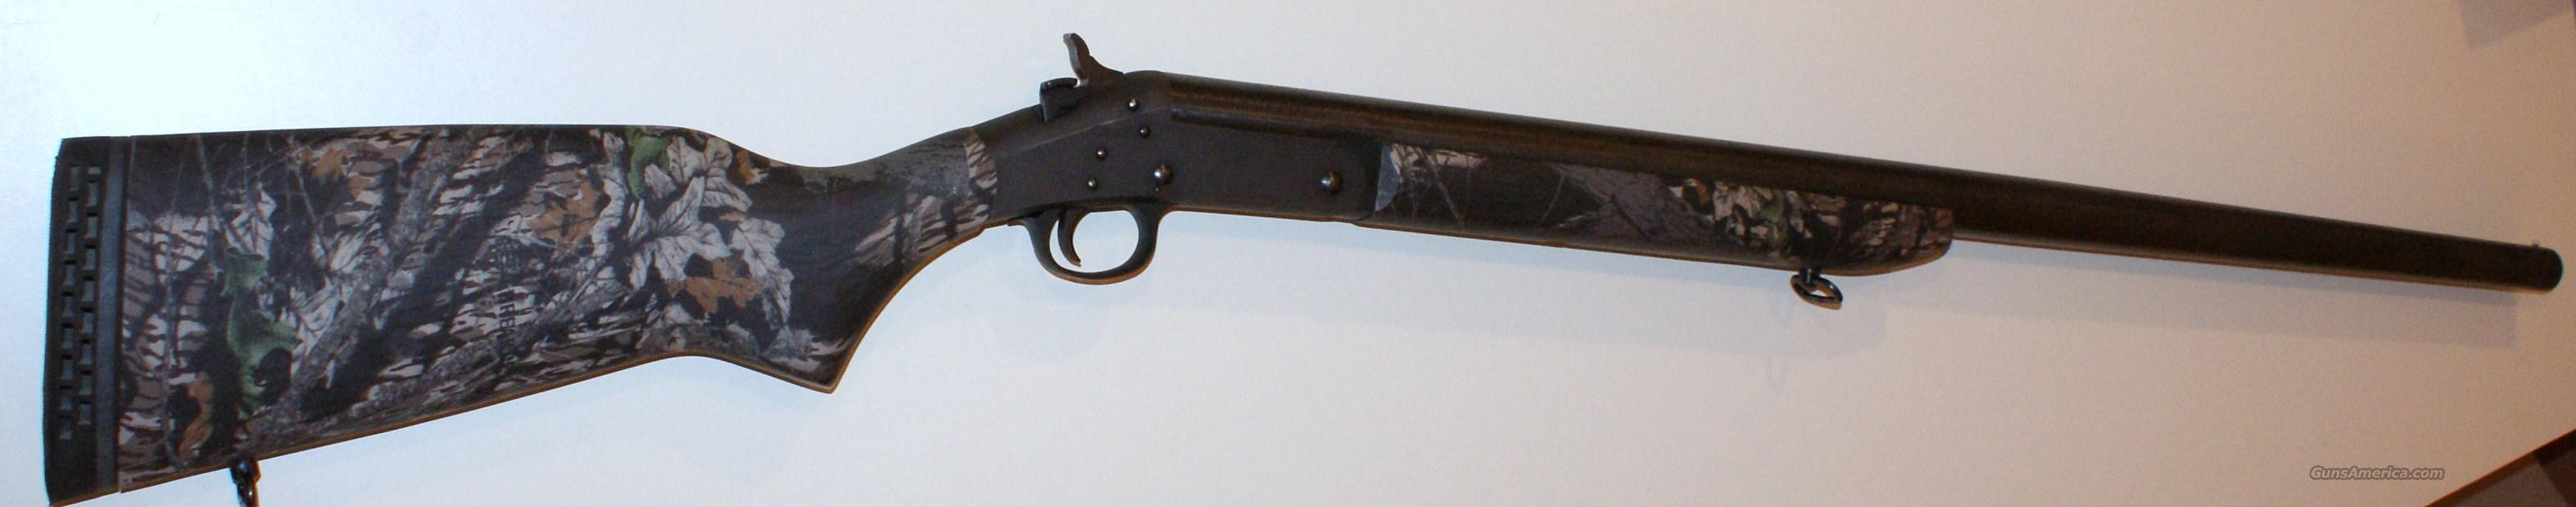 New England Pardner Model SB2 10ga Single Shot Used  Guns > Shotguns > New England Firearms (NEF) Shotguns